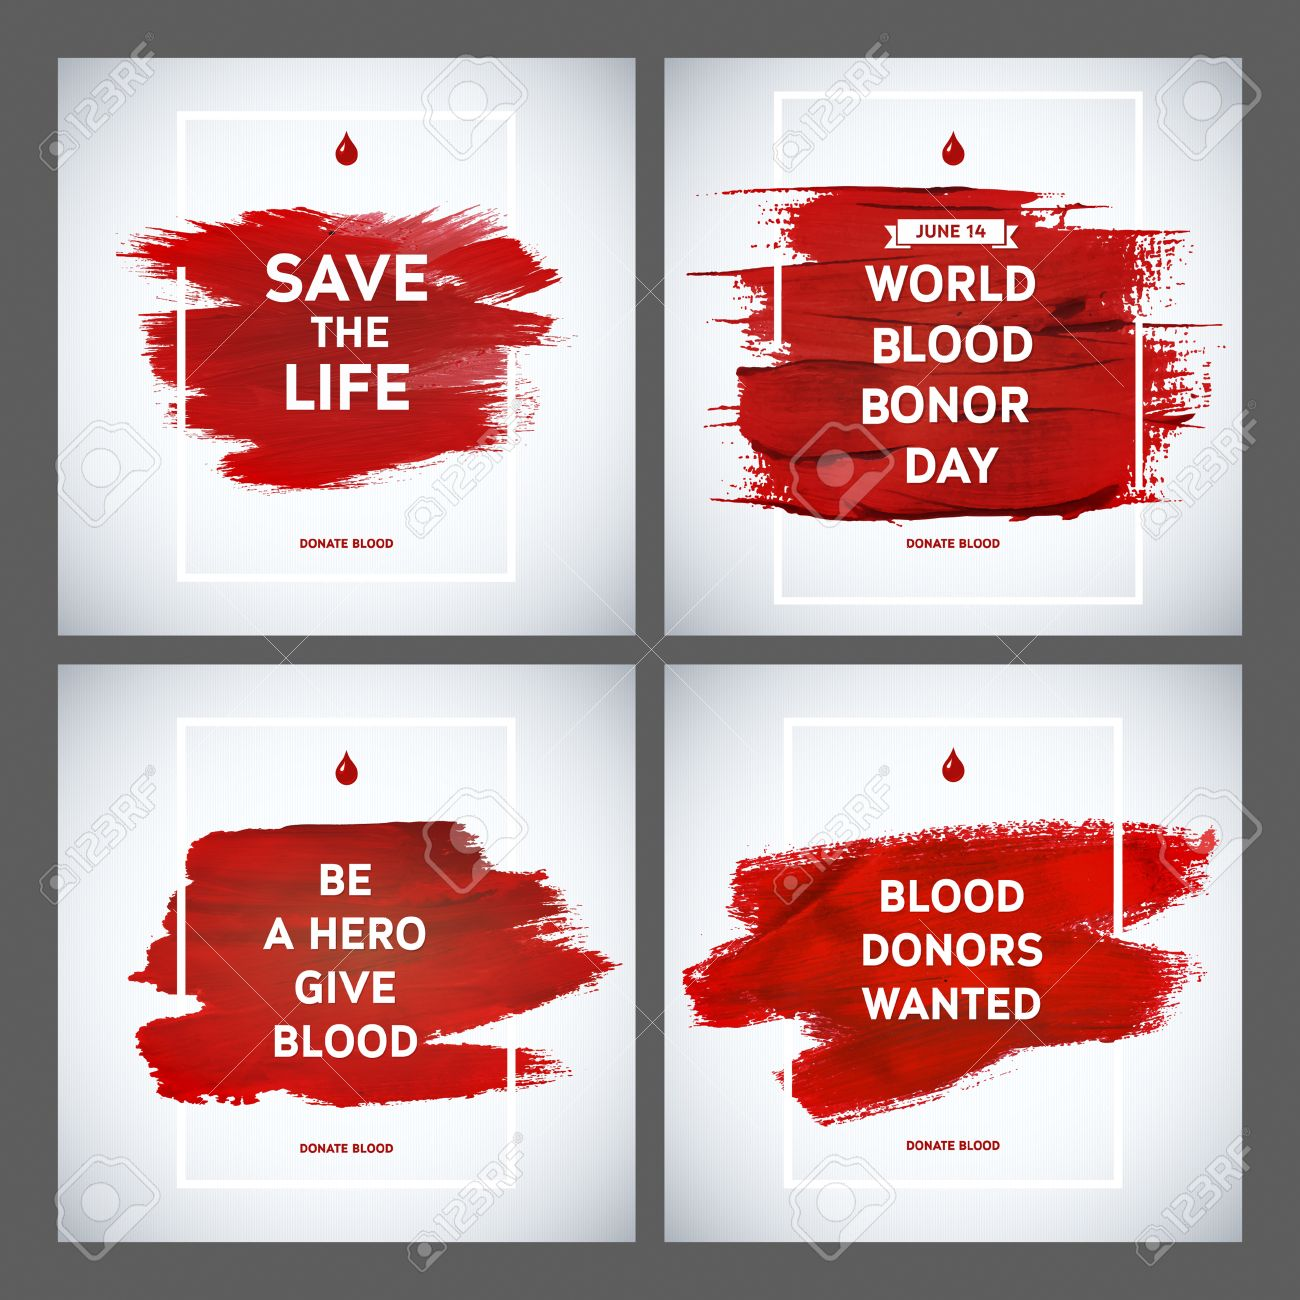 Poster design on blood donation - Creative Blood Donor Day Motivation Information Donor Poster Set Blood Donation World Blood Donor